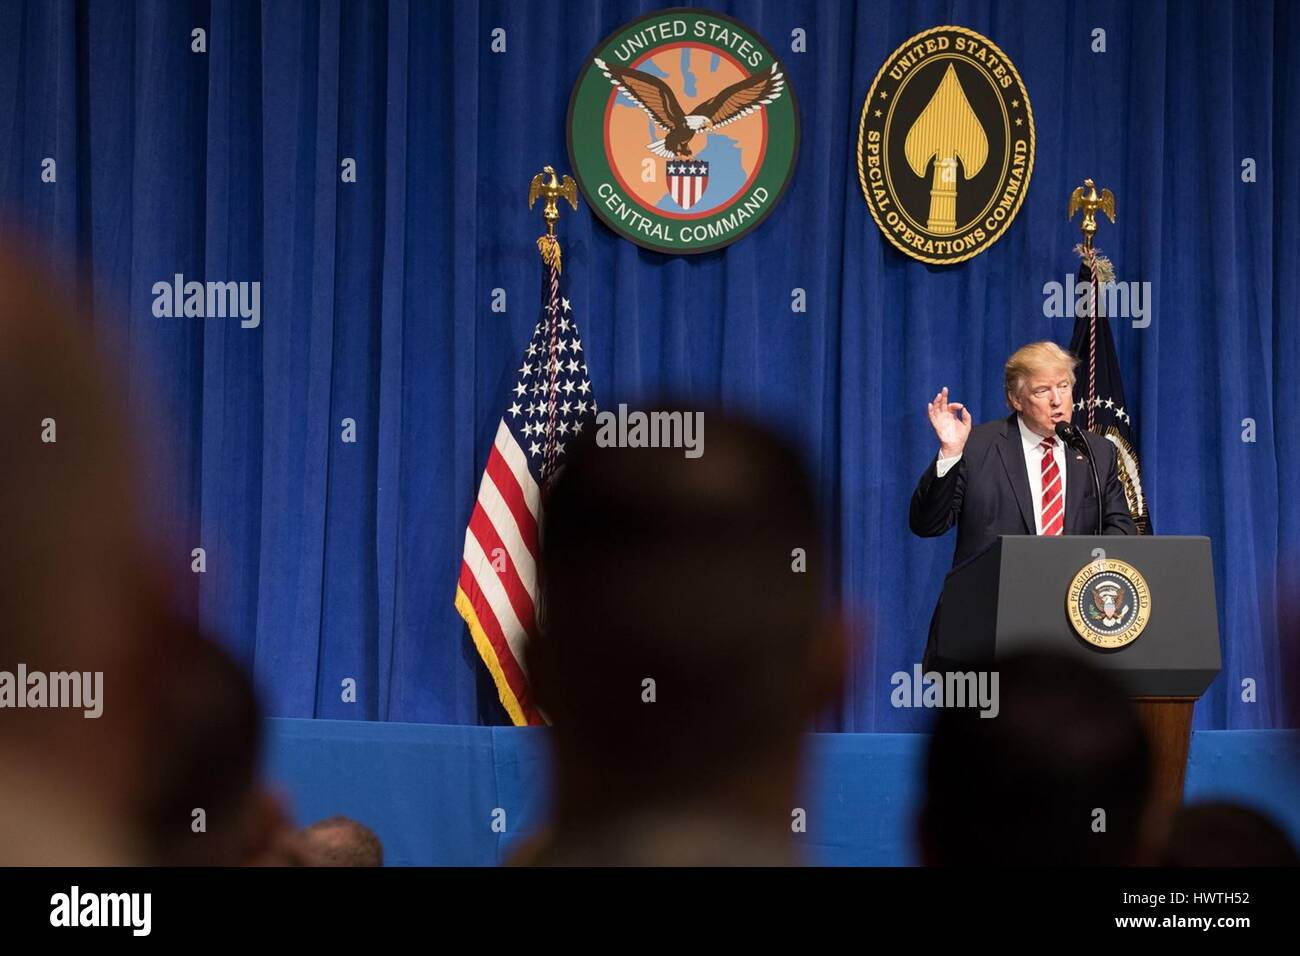 U.S President Donald Trump delivers remarks during a visit to the U.S. Military Central Command Headquarters February - Stock Image